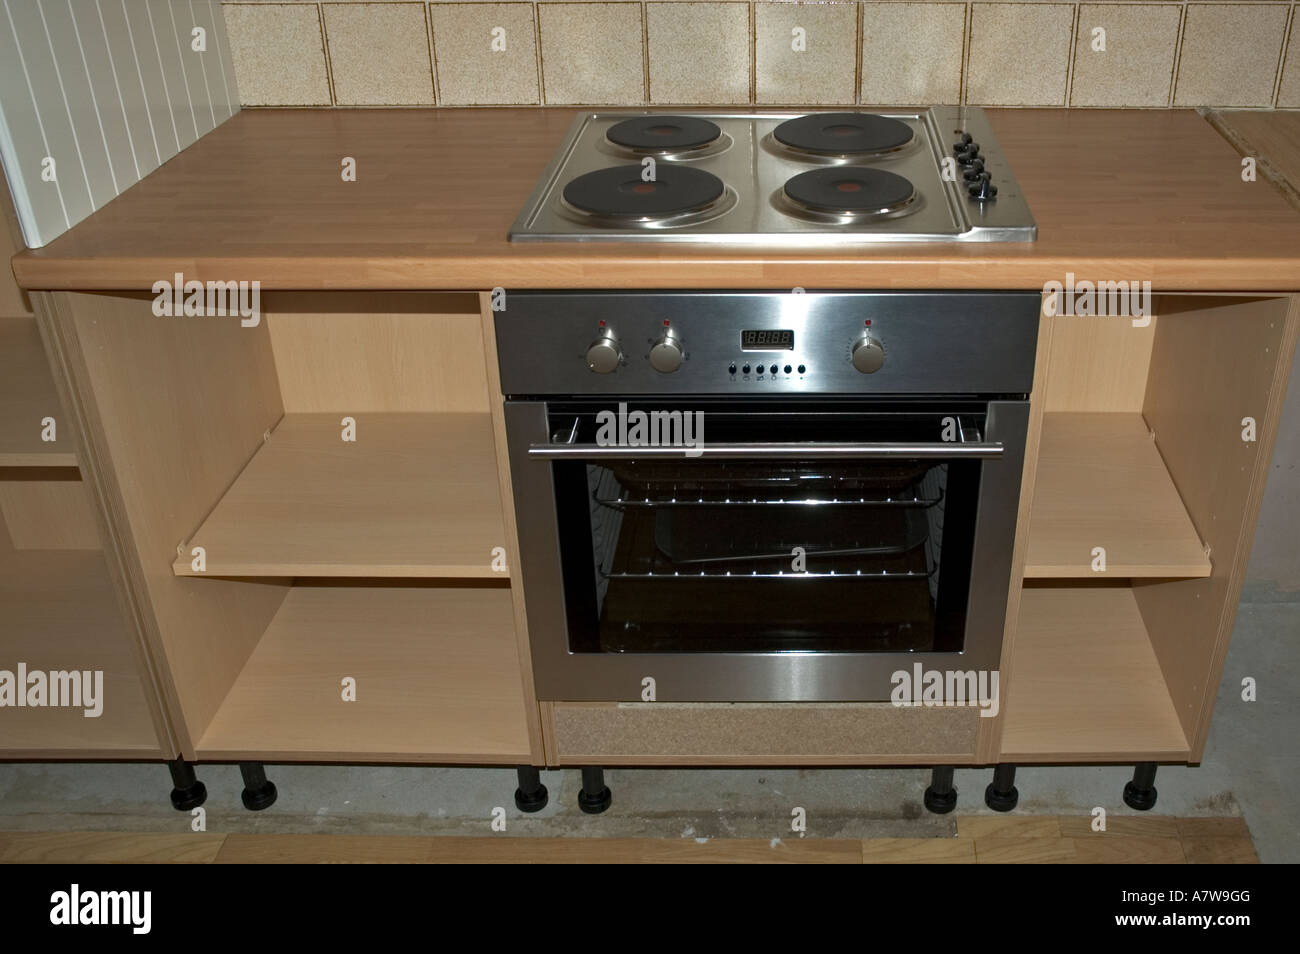 a new cooker being fitted into a new kitchen - Stock Image